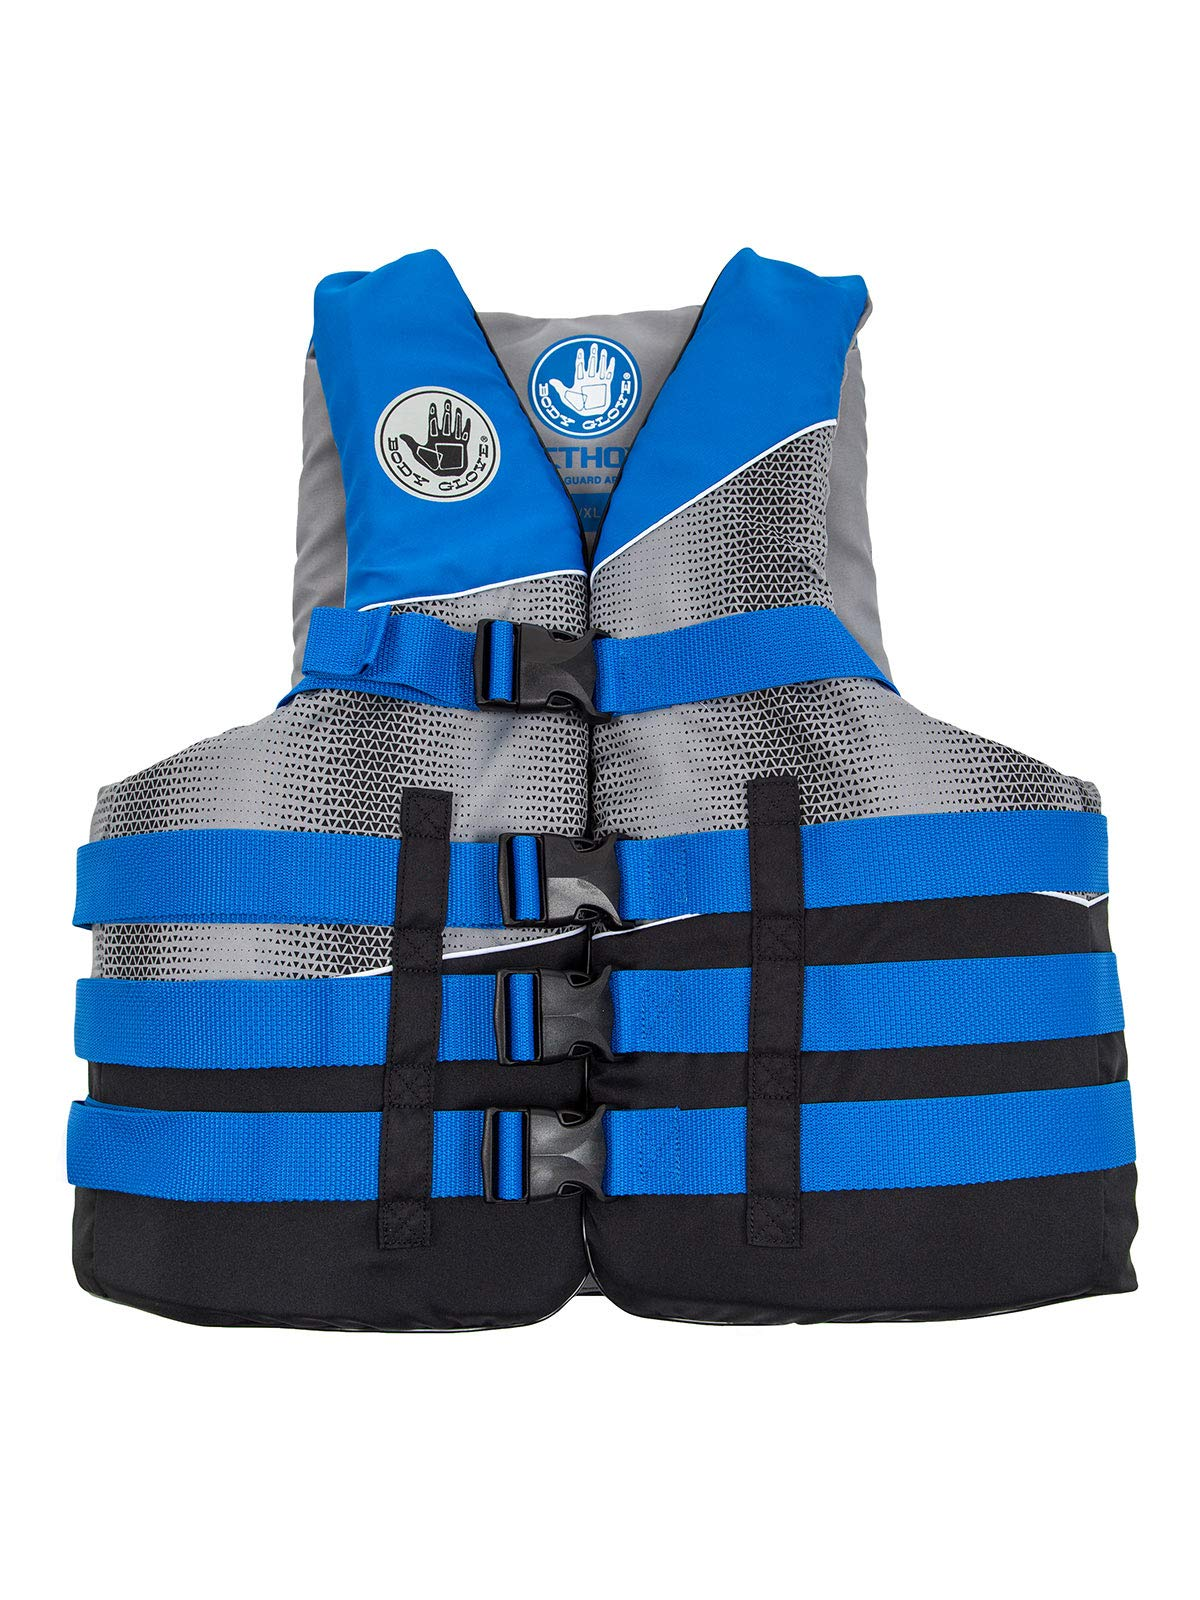 Body Glove Method USCG Approved Nylon Life Vest, X-Small, Black/Electric Blue/Silver/Grey